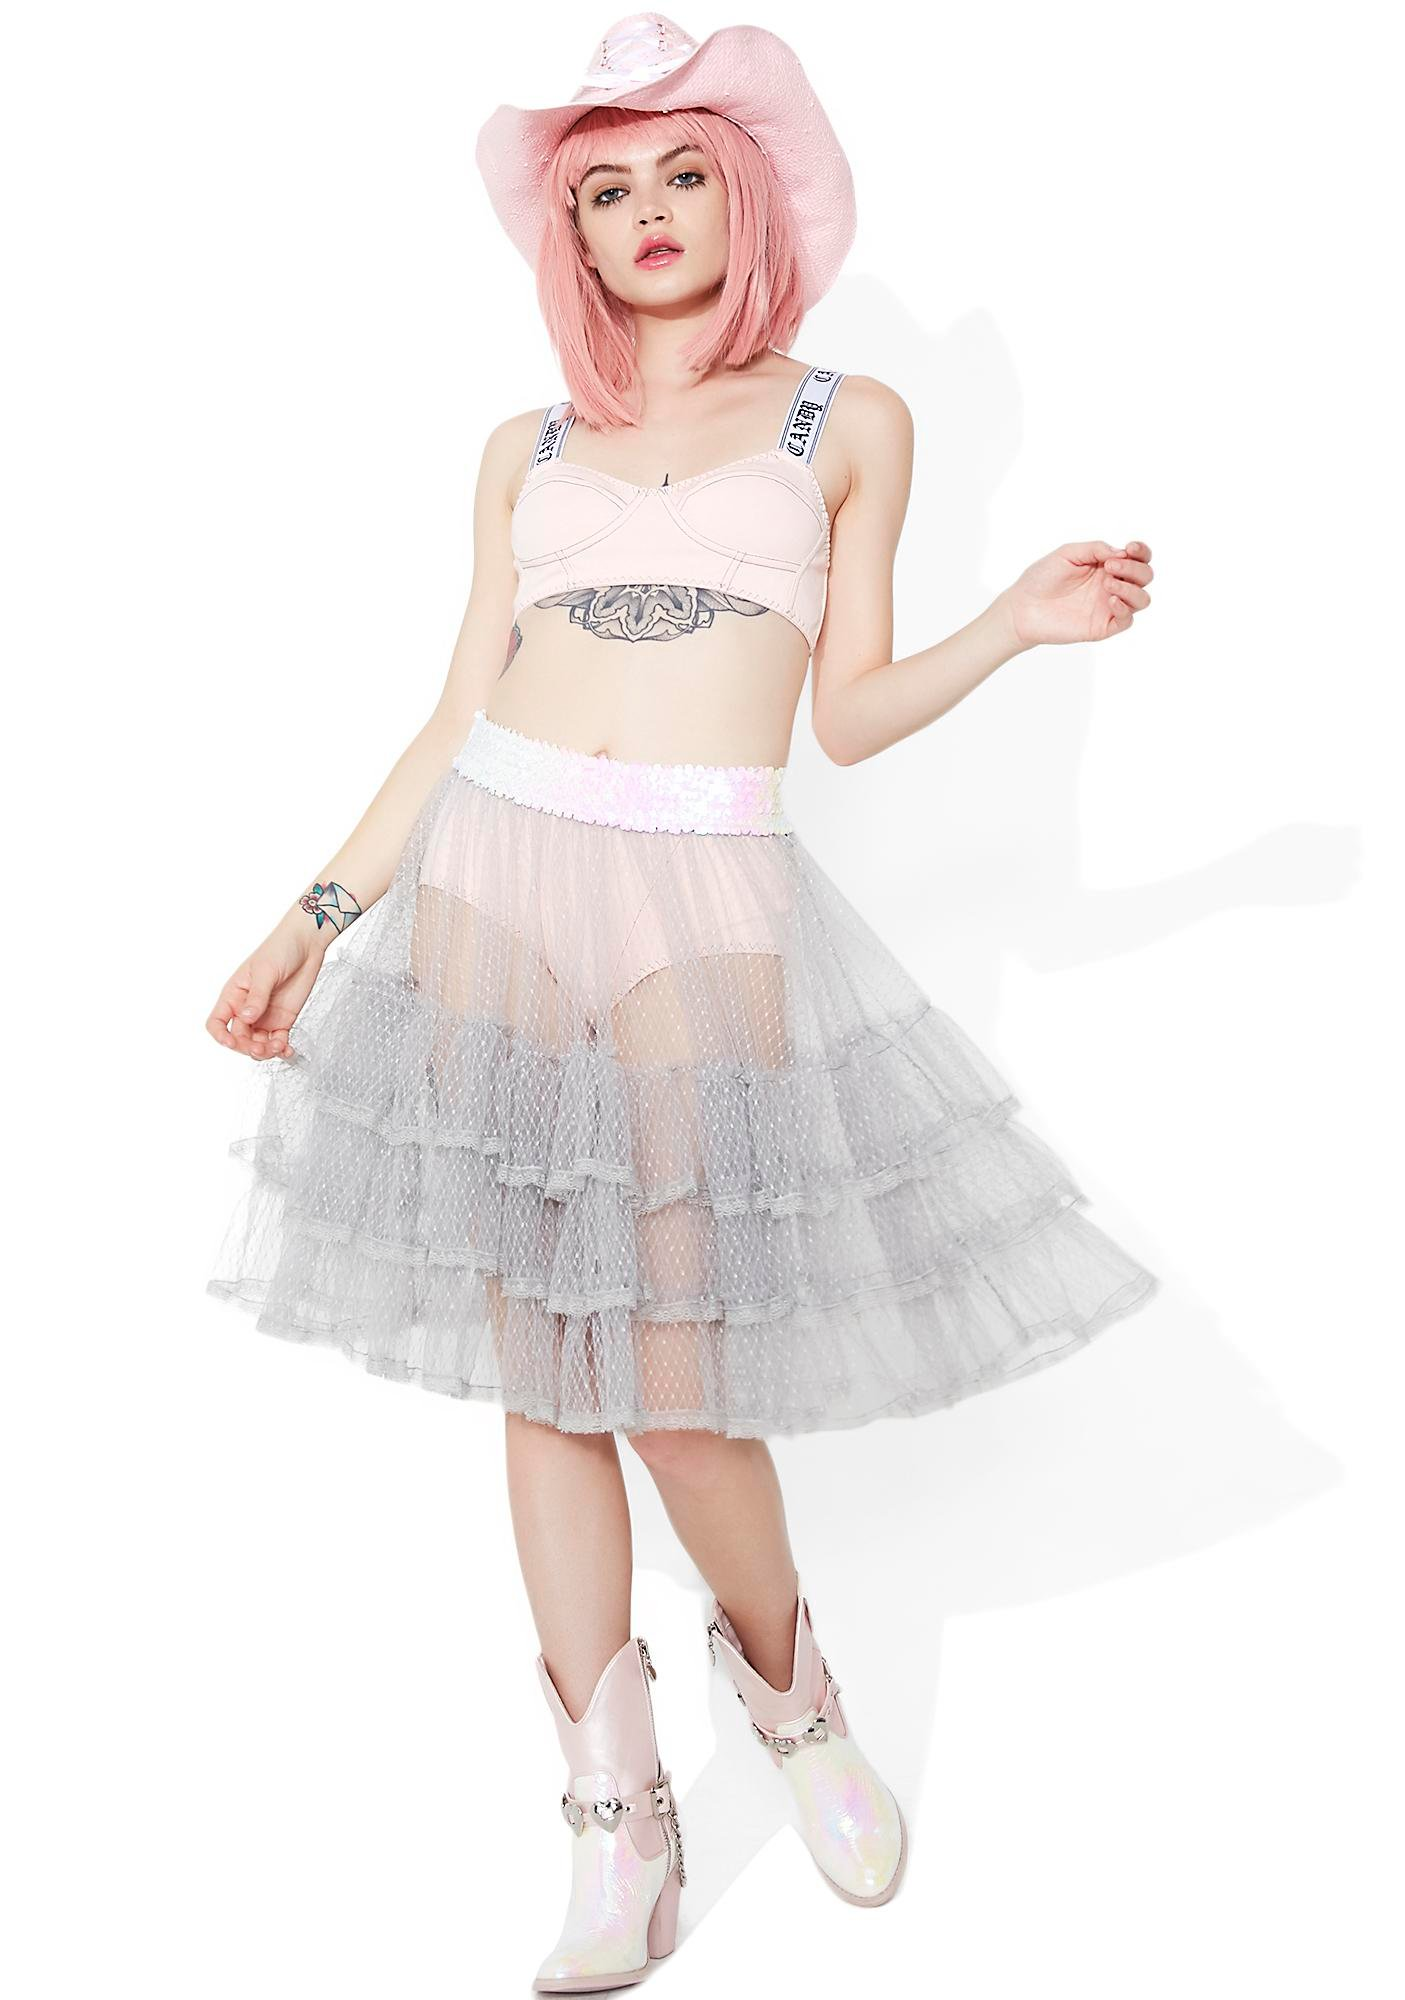 Sugar Thrillz Silver Spoon Sheer Ruffle Skirt